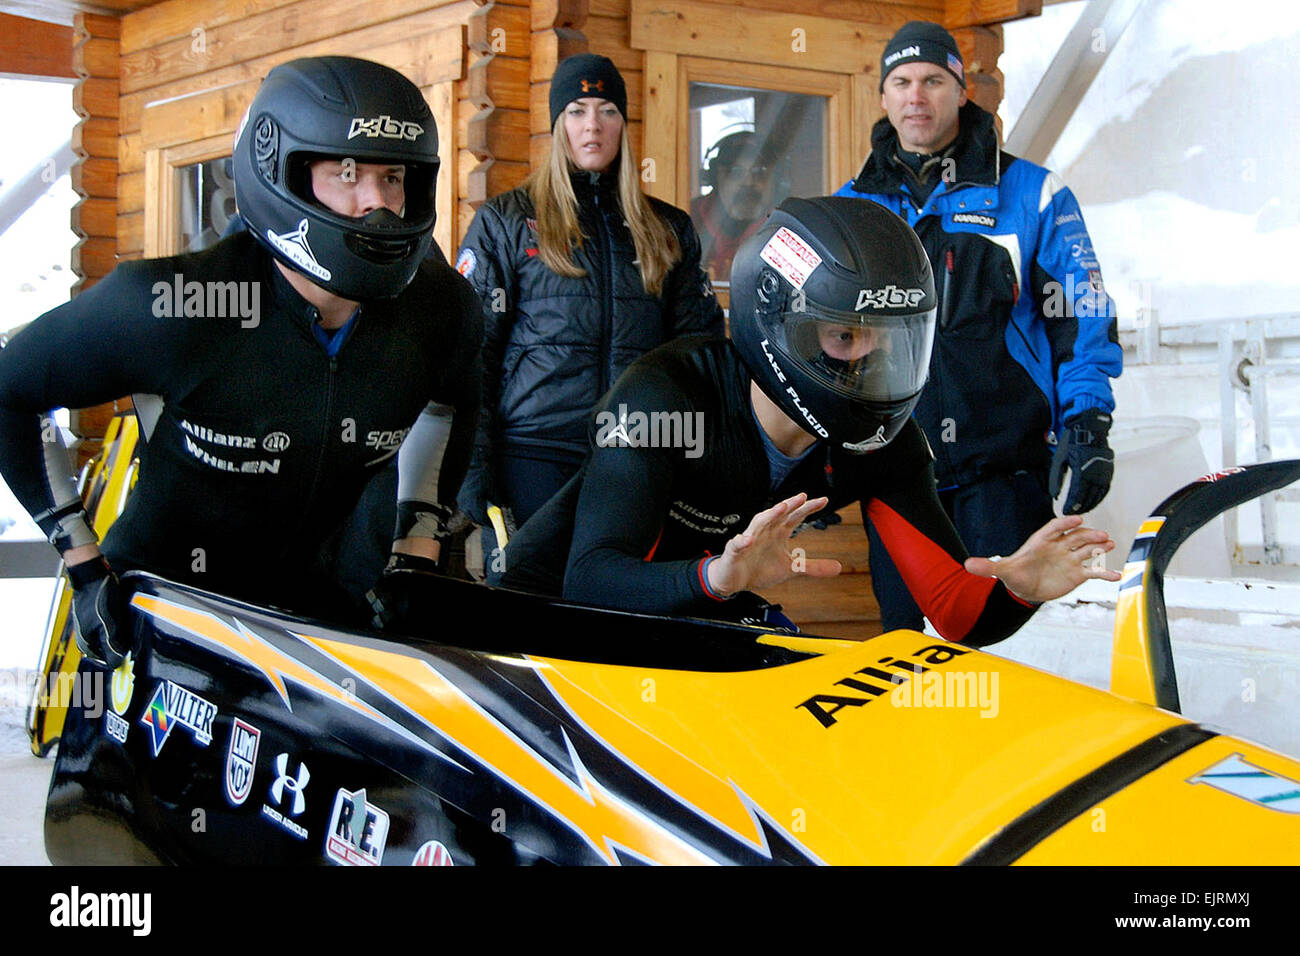 U.S. Army World Class Athlete Program bobsledder Pfc. John Napier right and Cory Butner left get set to push off - Stock Image